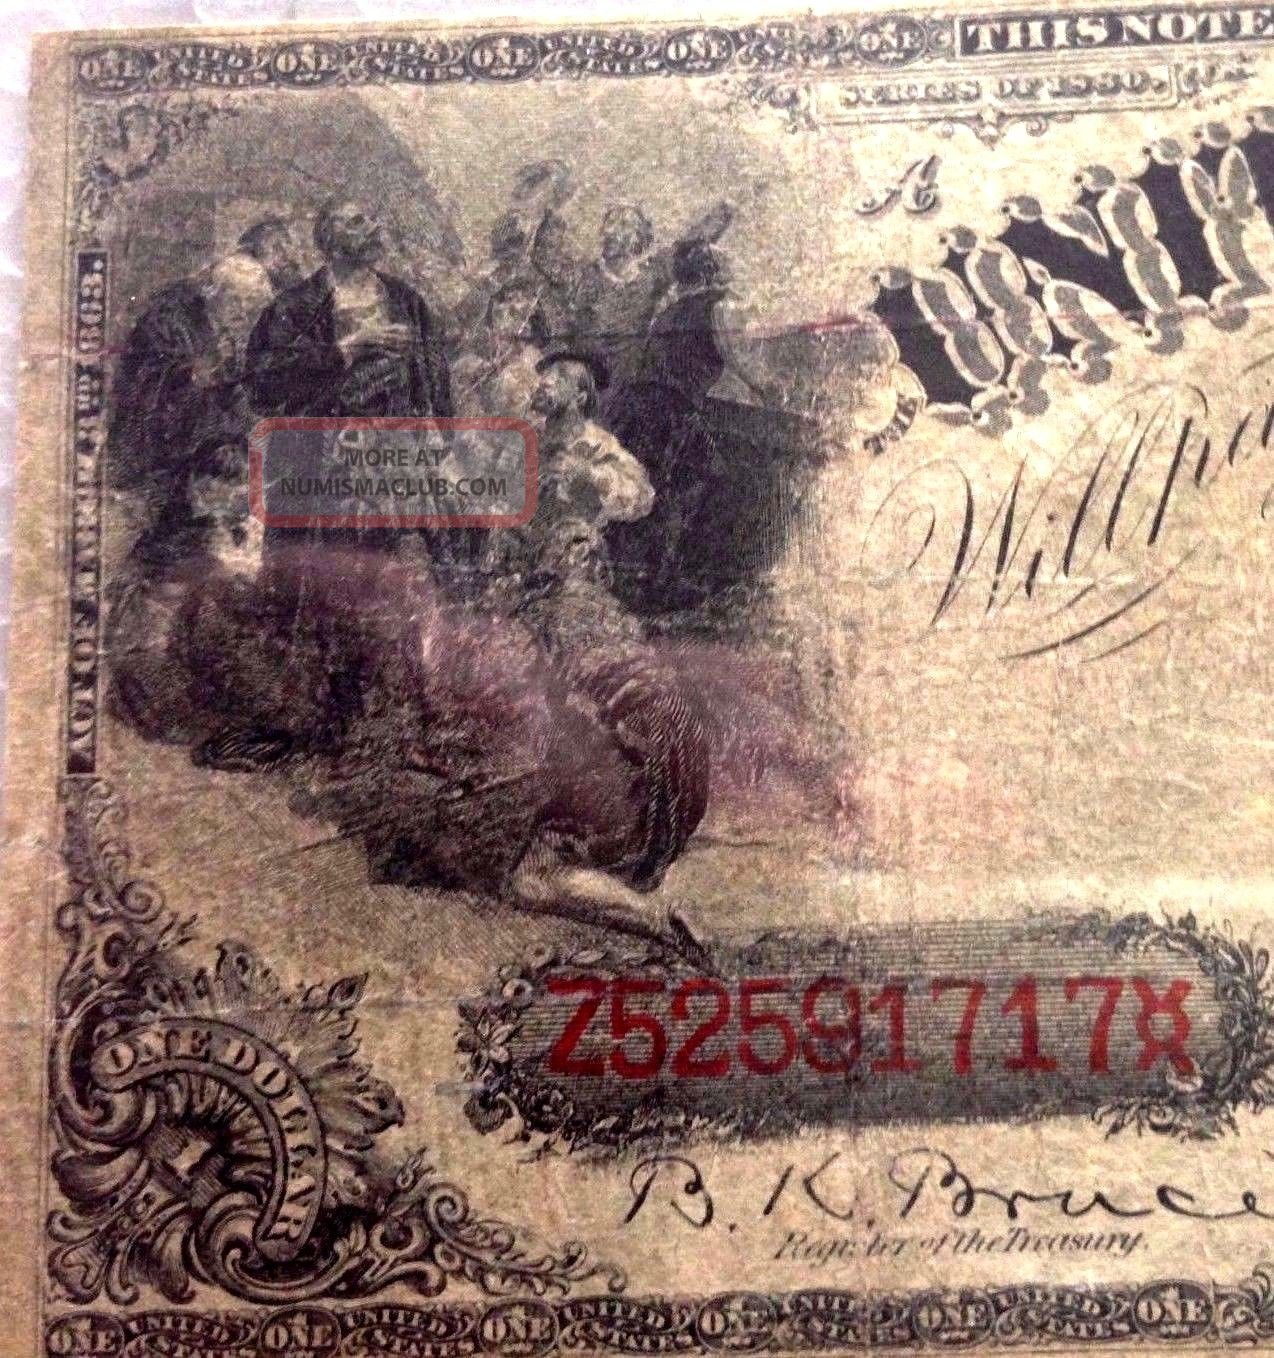 fr 30 1880 series 1 us legal tender note pmg 15 choice fine paper